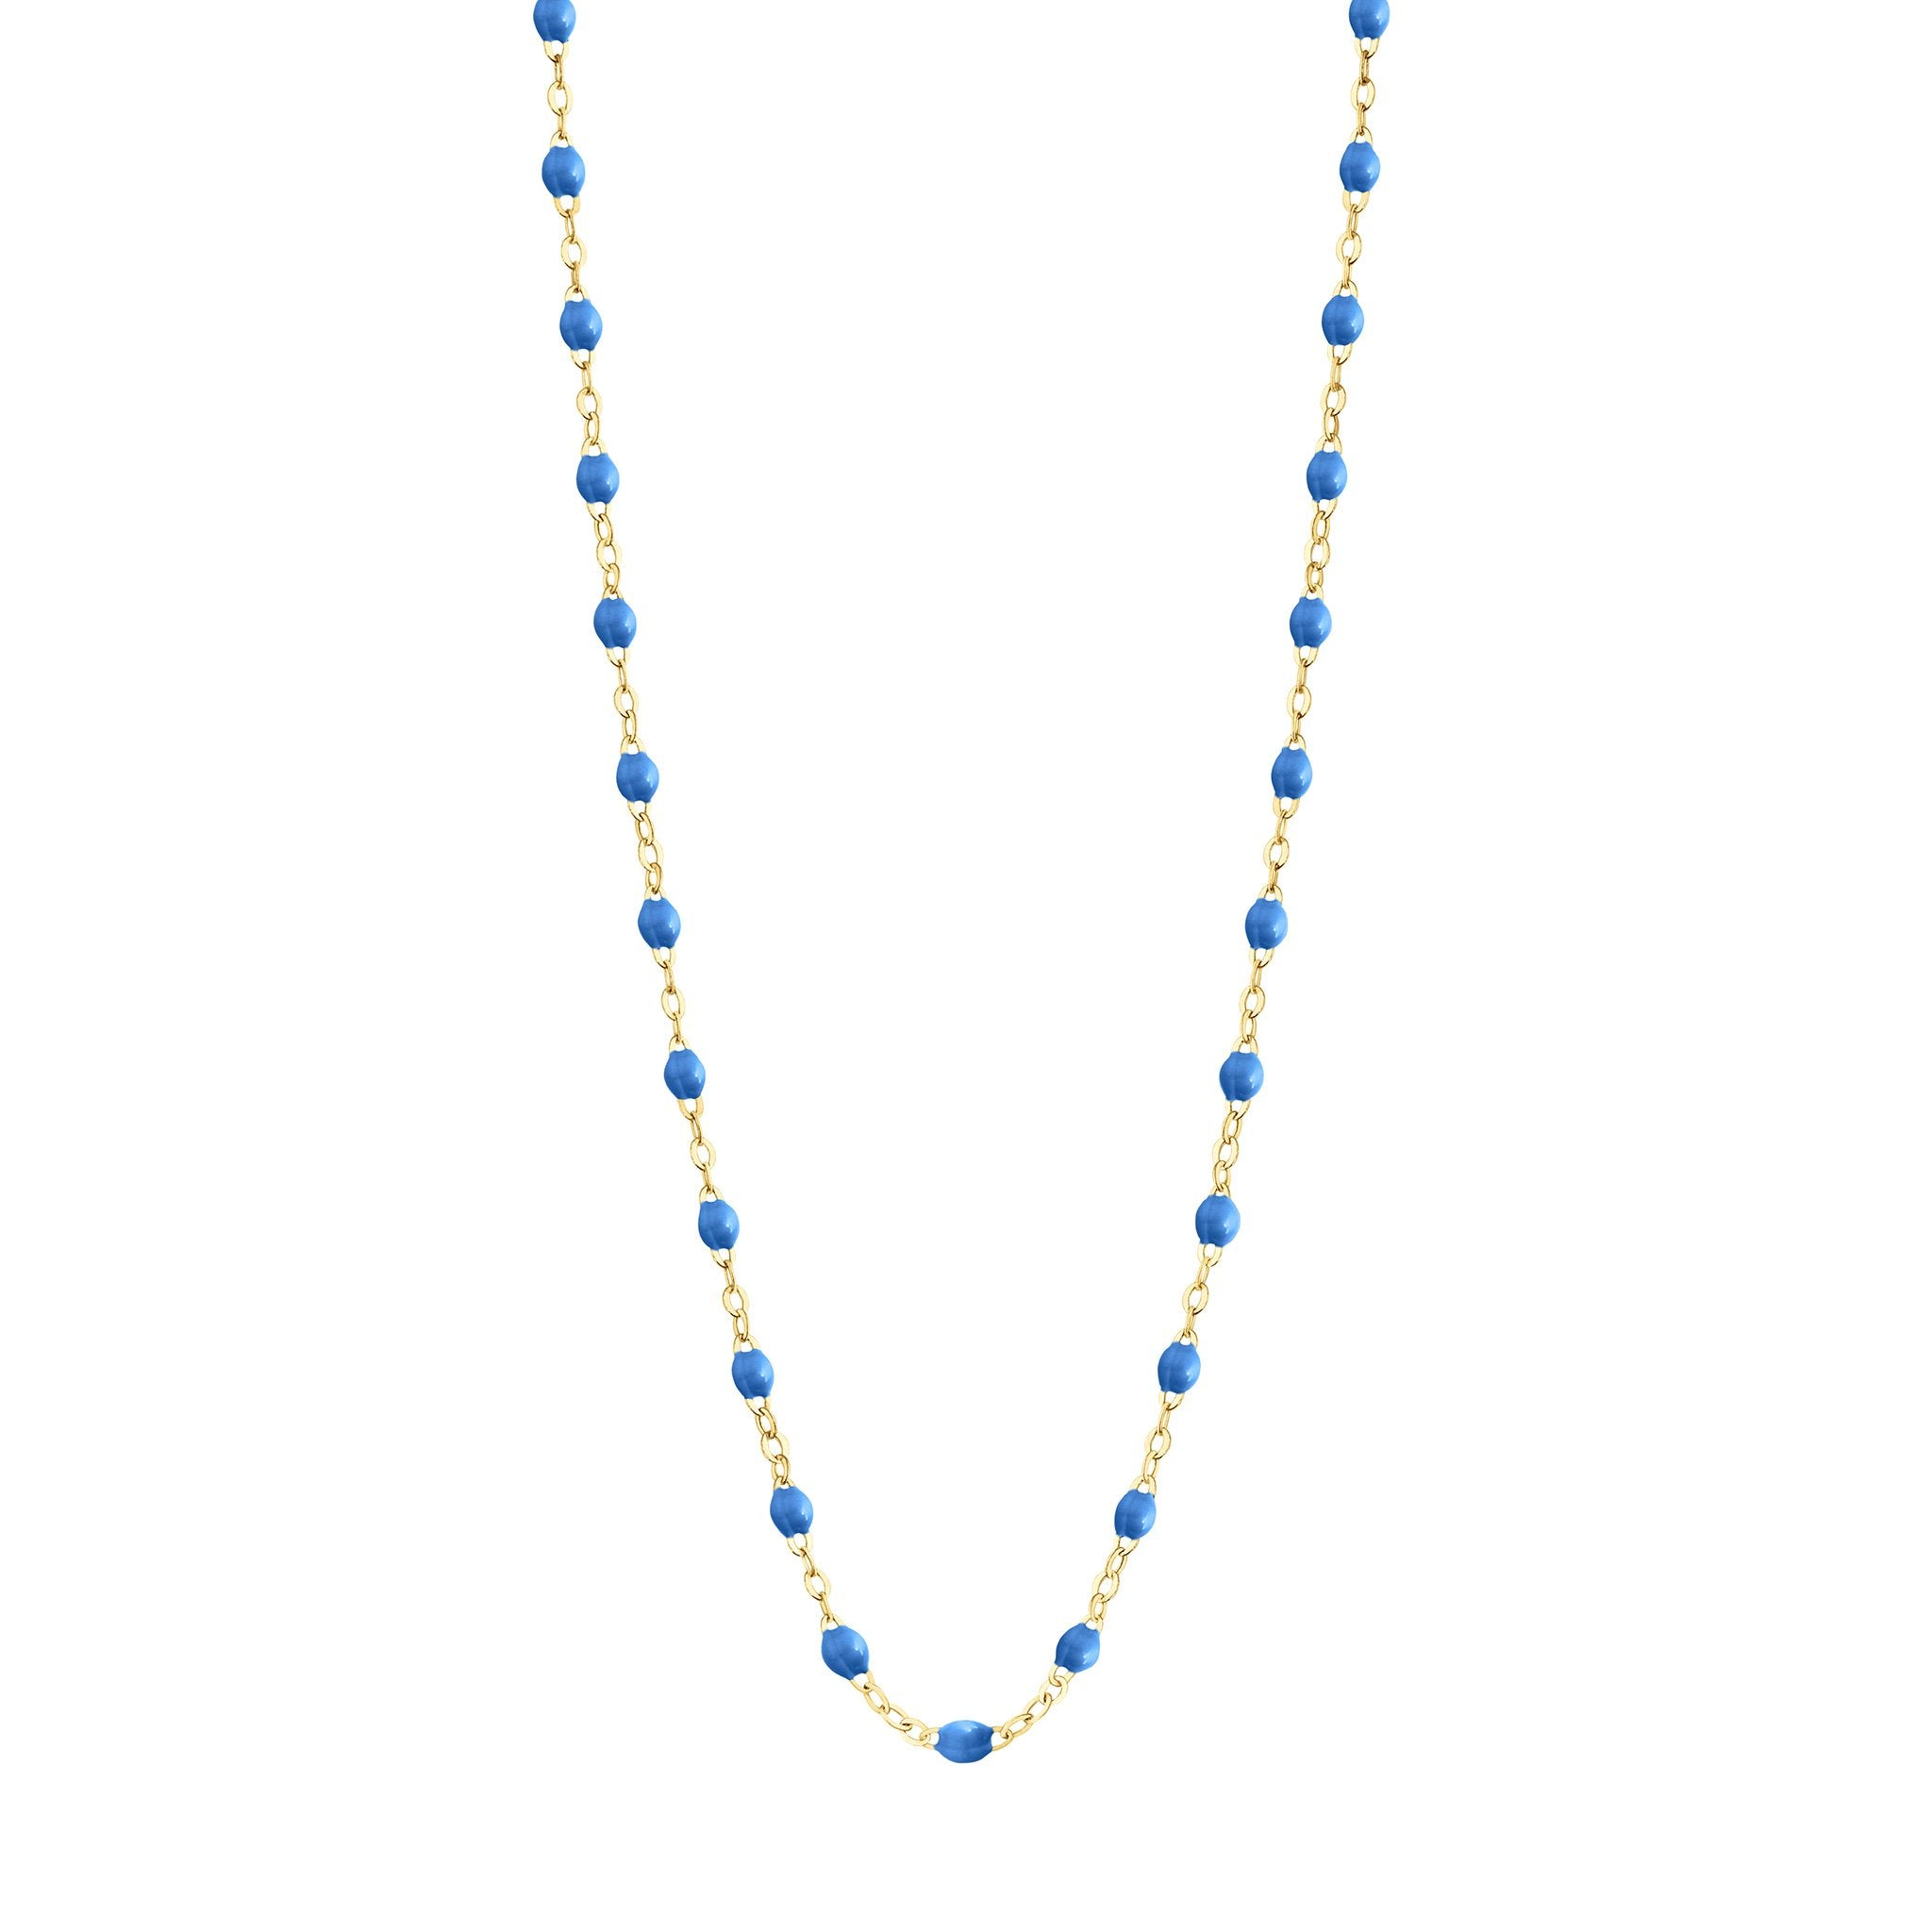 Gigi Clozeau - Classic Gigi Blue necklace, Yellow Gold, 19.7""